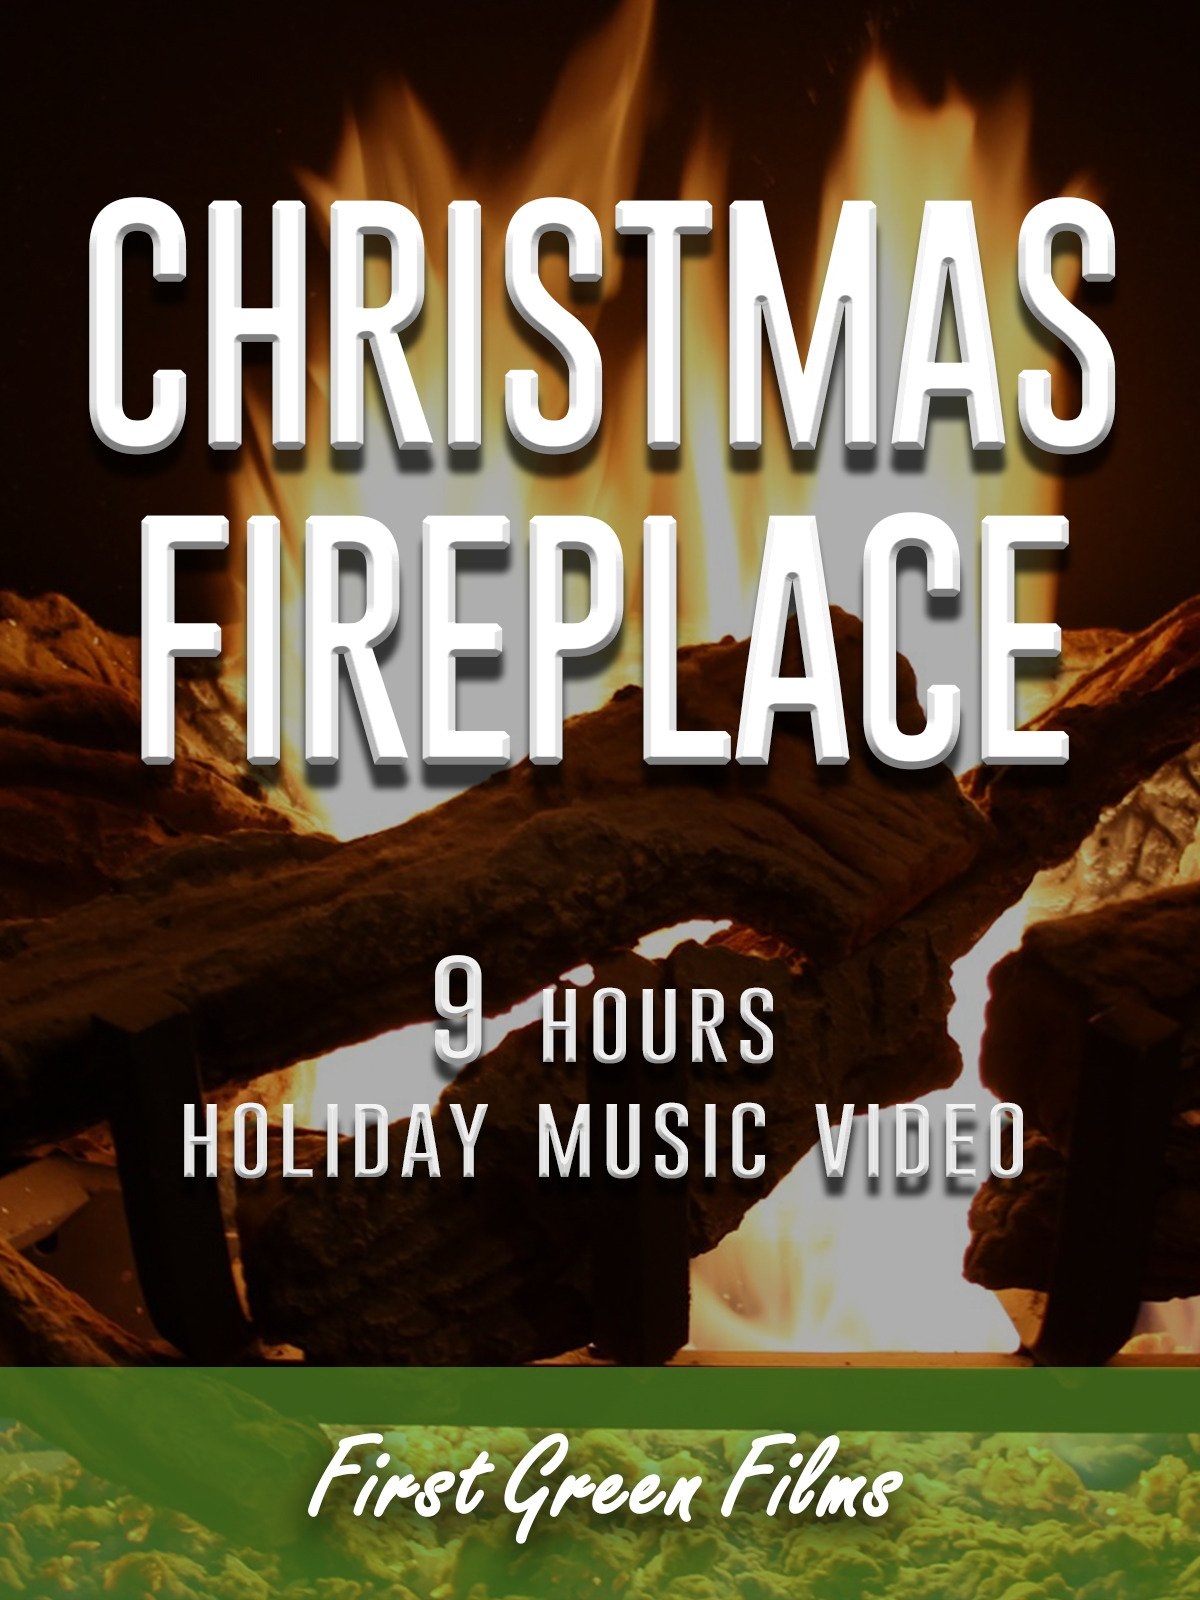 Christmas fireplace, 9 hours holiday music video